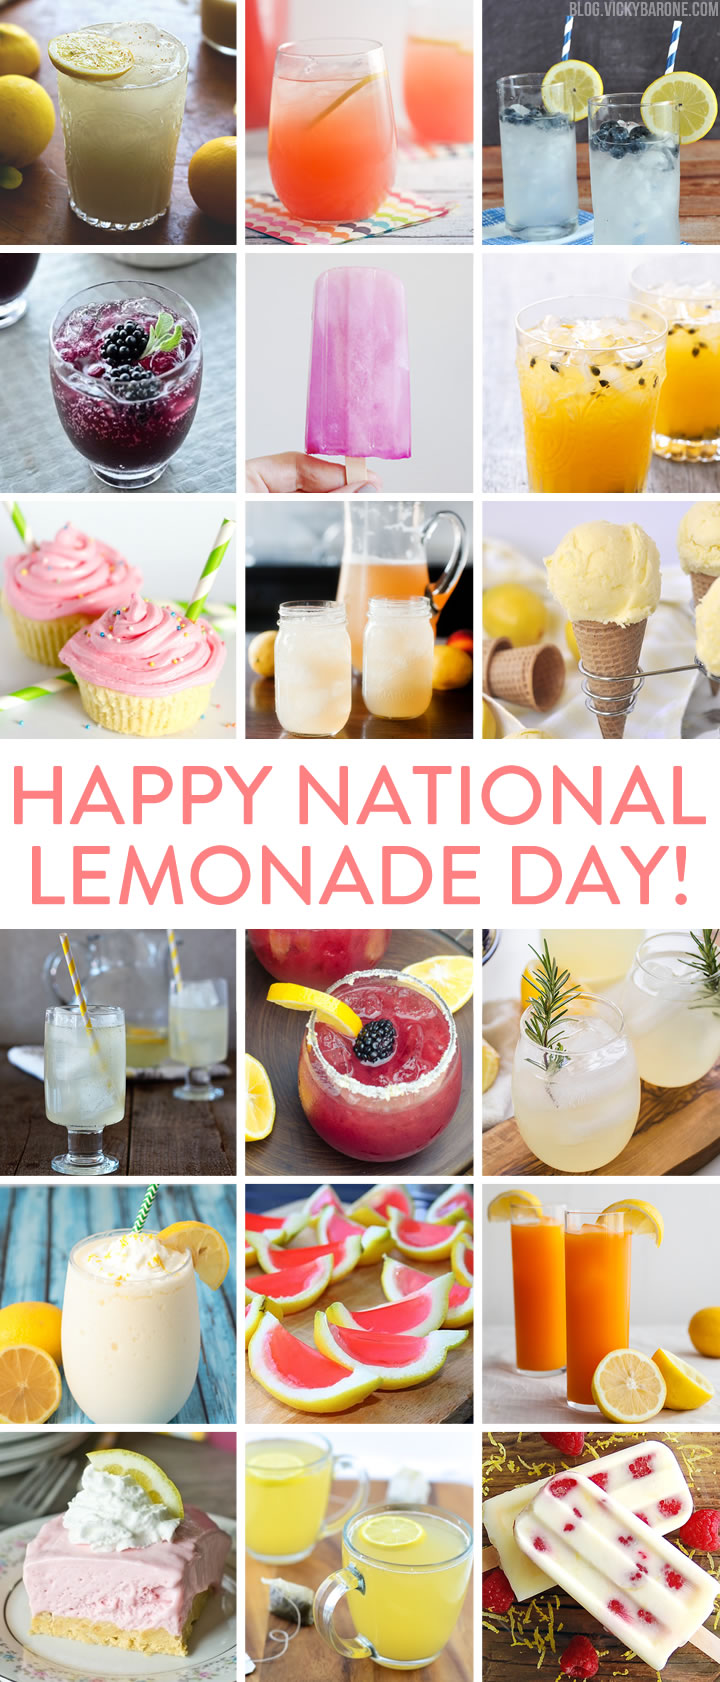 National Lemonade Day | Vicky Barone